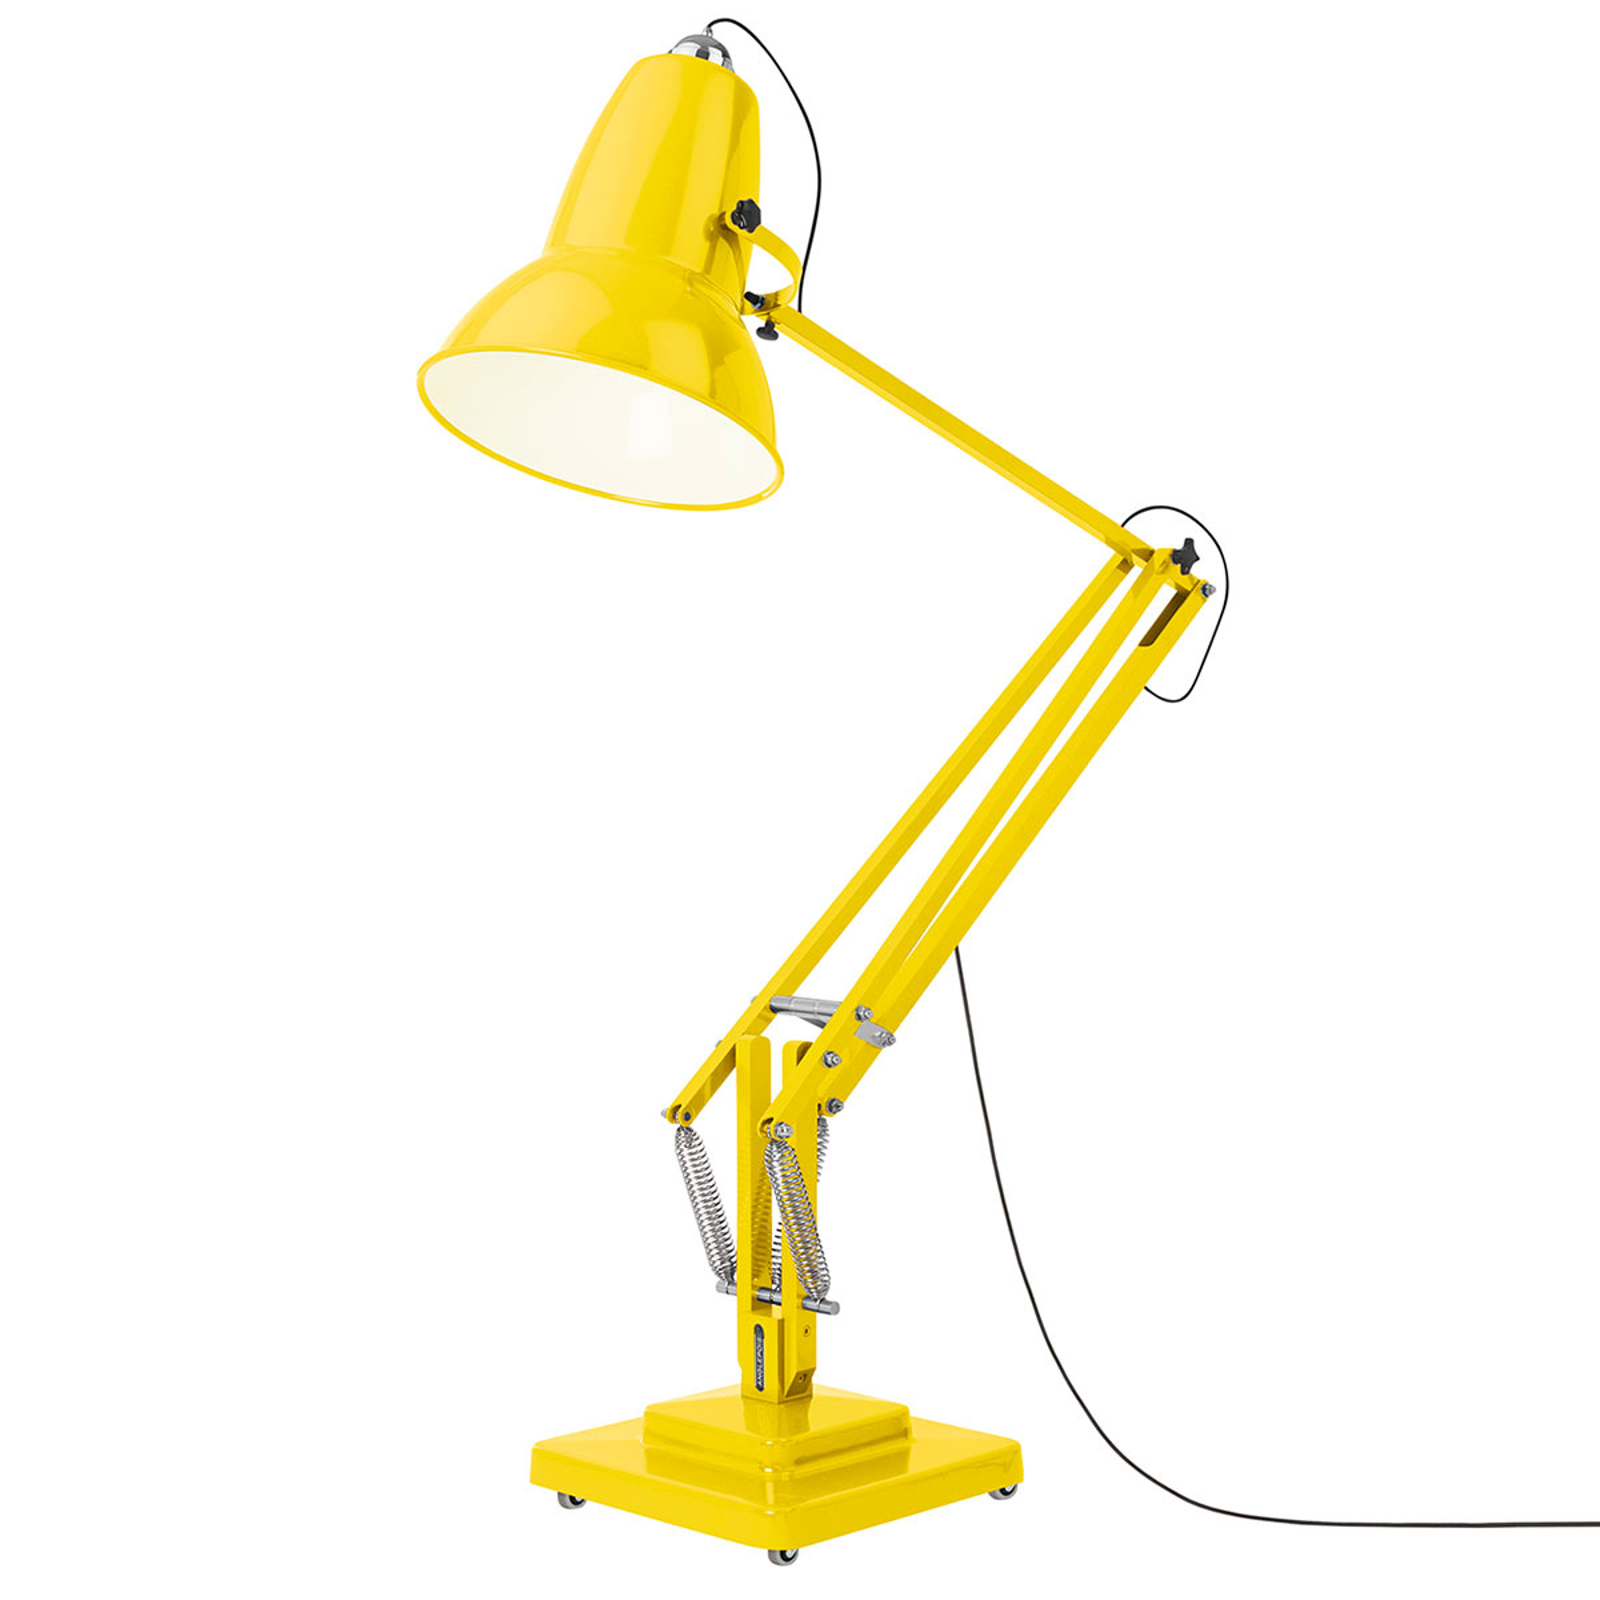 Anglepoise Original 1227 Giant Stehleuchte gelb